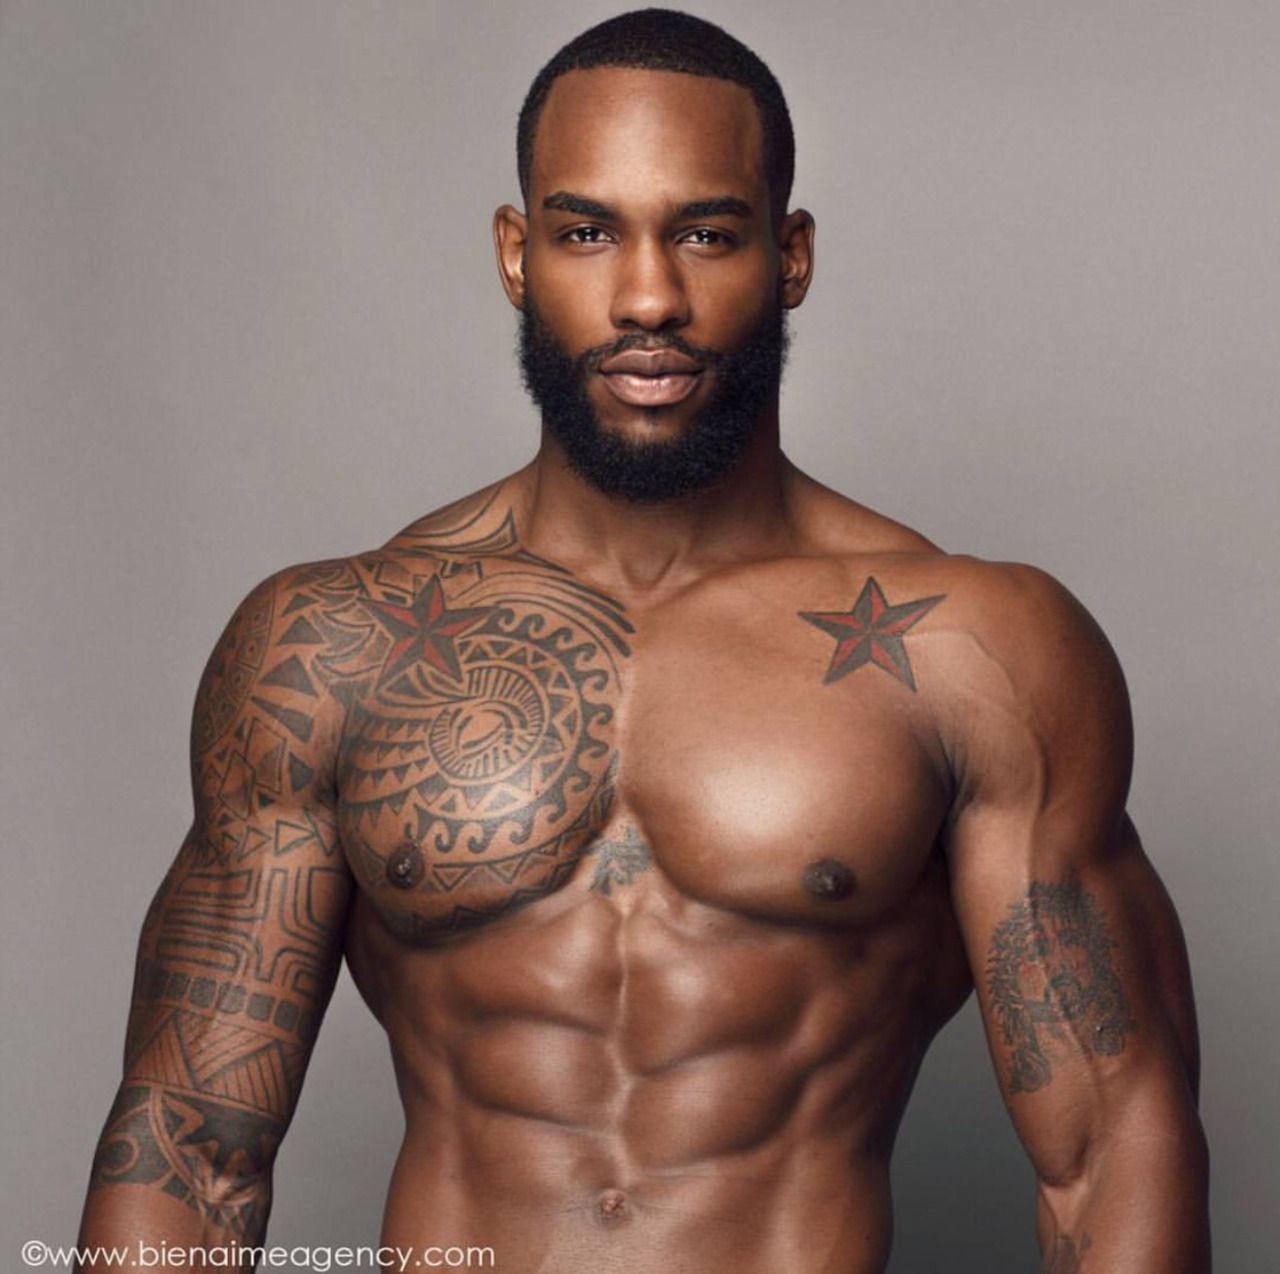 black single men in caliente My single friends and i can attest to the trials that come with having fewer dating options and outnumbering black men in our college and professional lives.